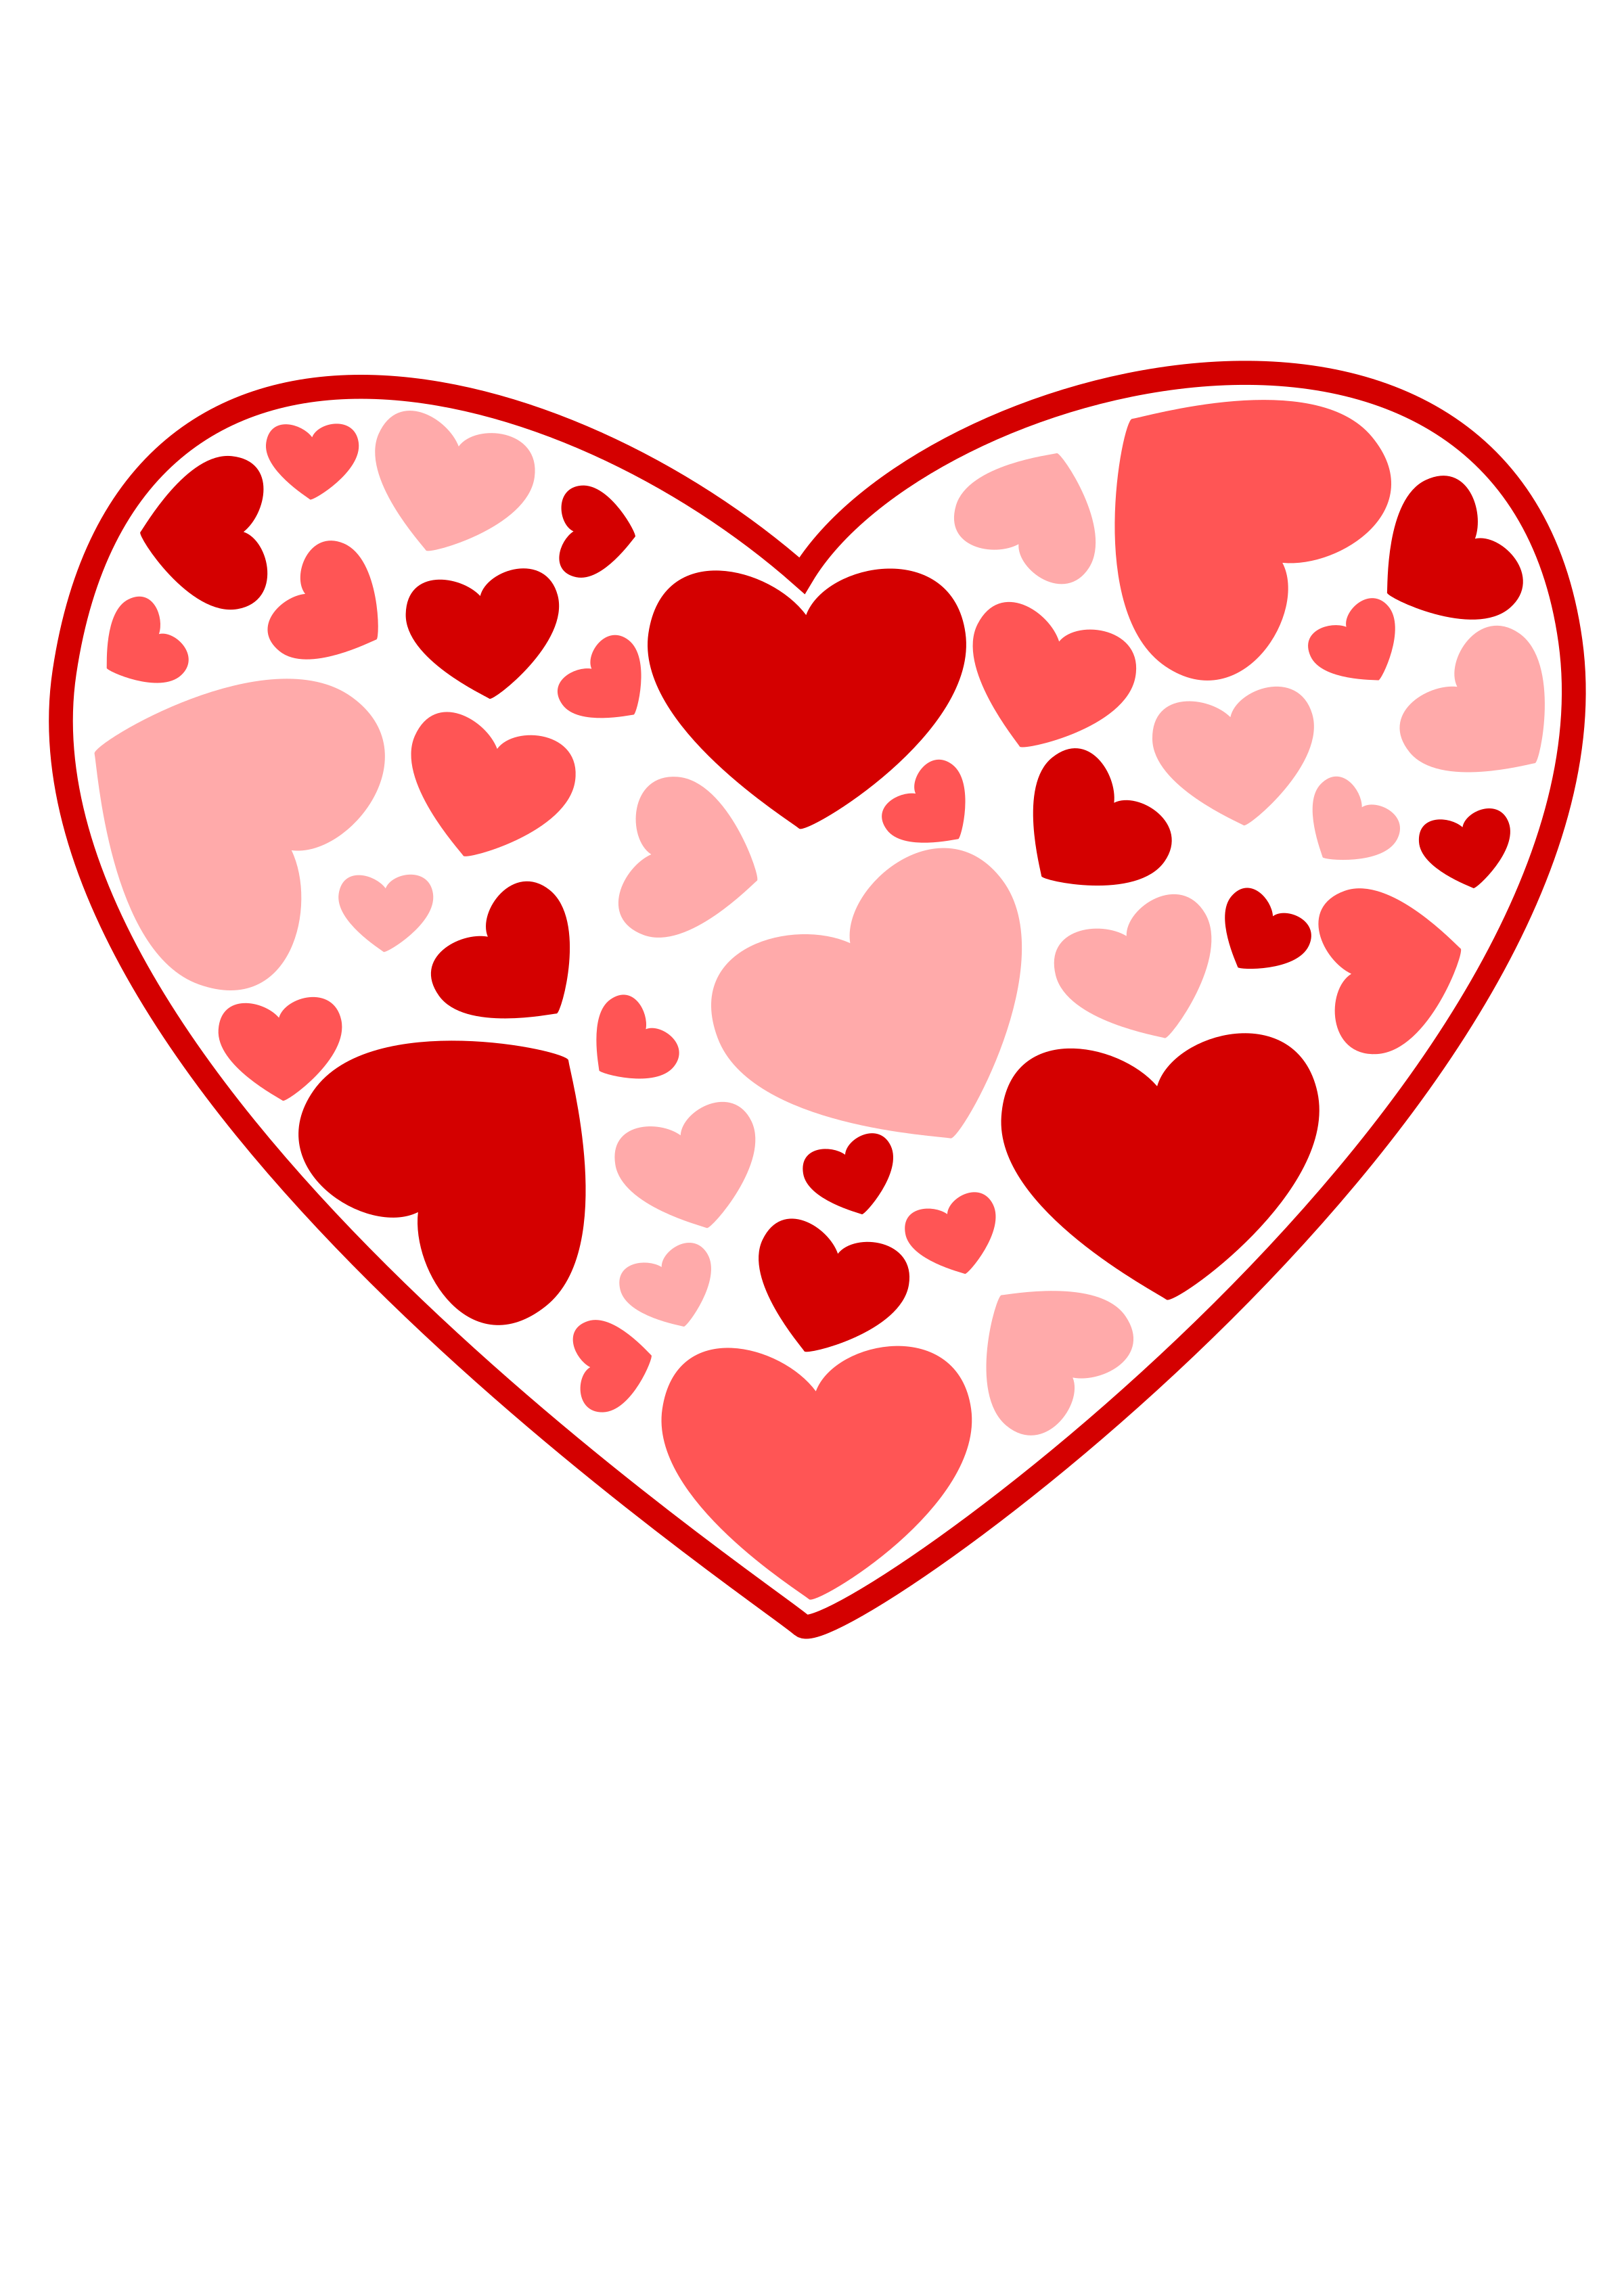 Valentines heart clipart 4 » Clipart Station.